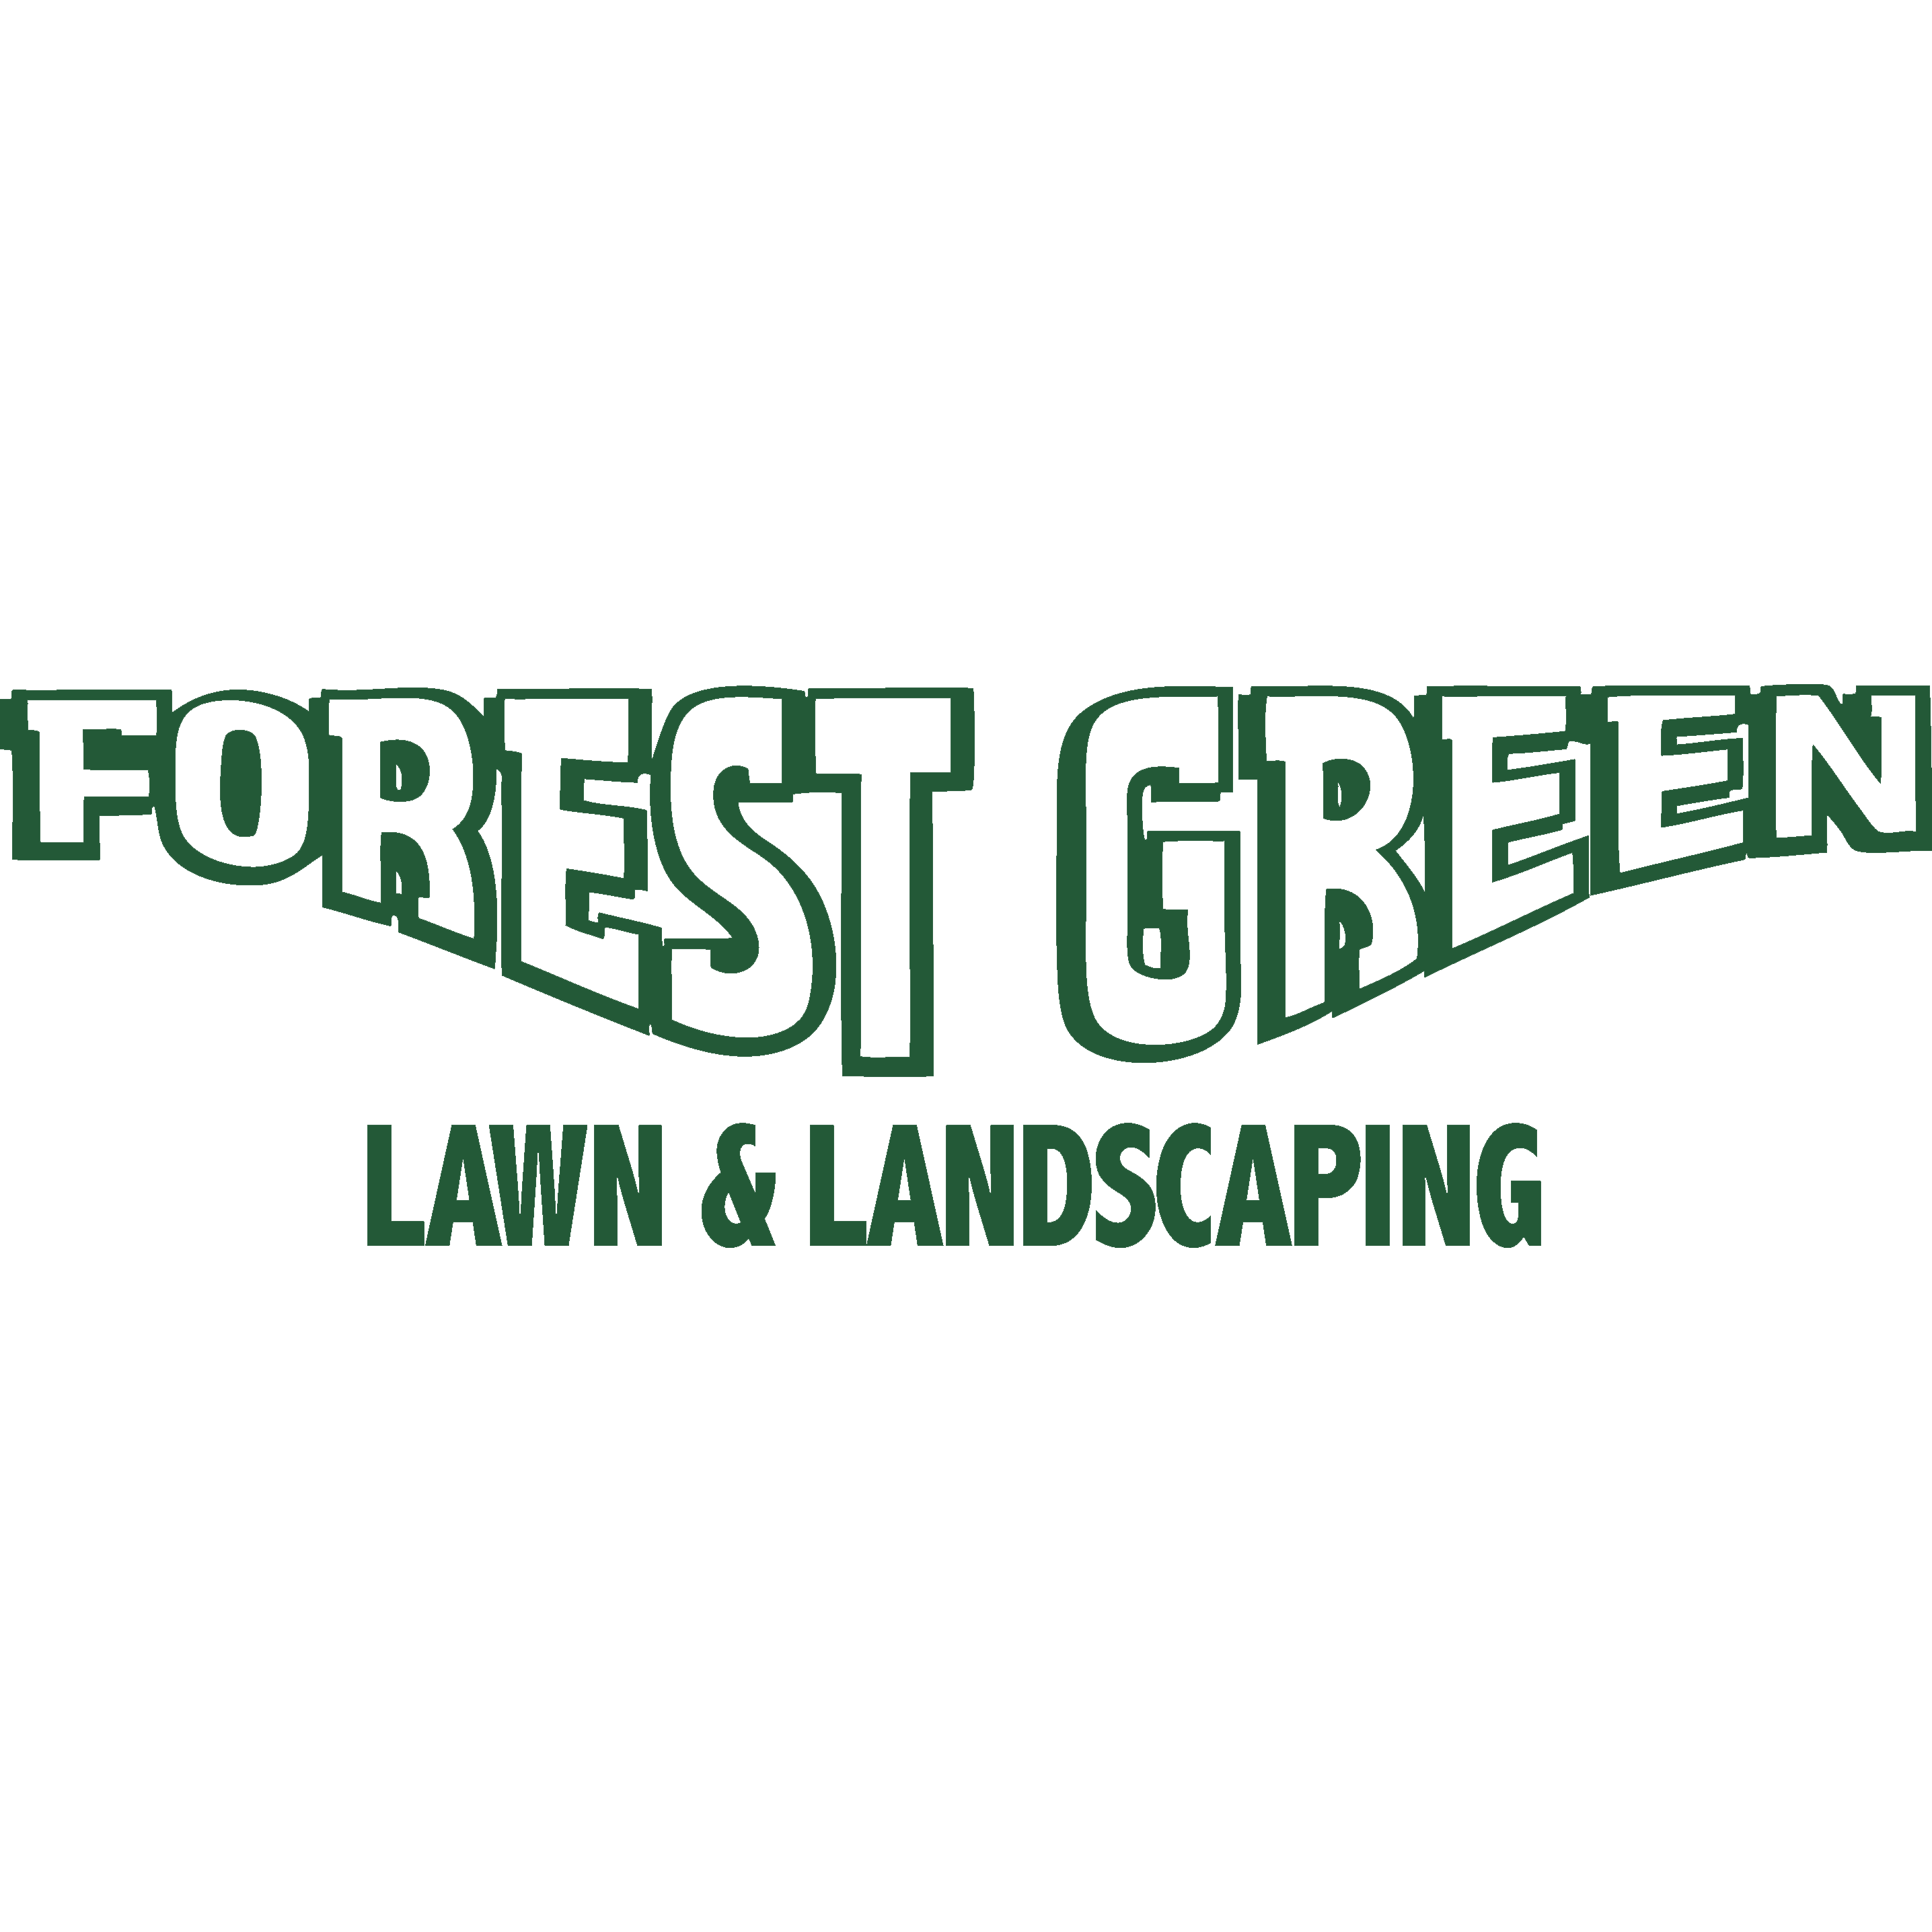 Forest Green Lawn & Landscaping - Omaha, NE 68106 - (402)556-0595 | ShowMeLocal.com